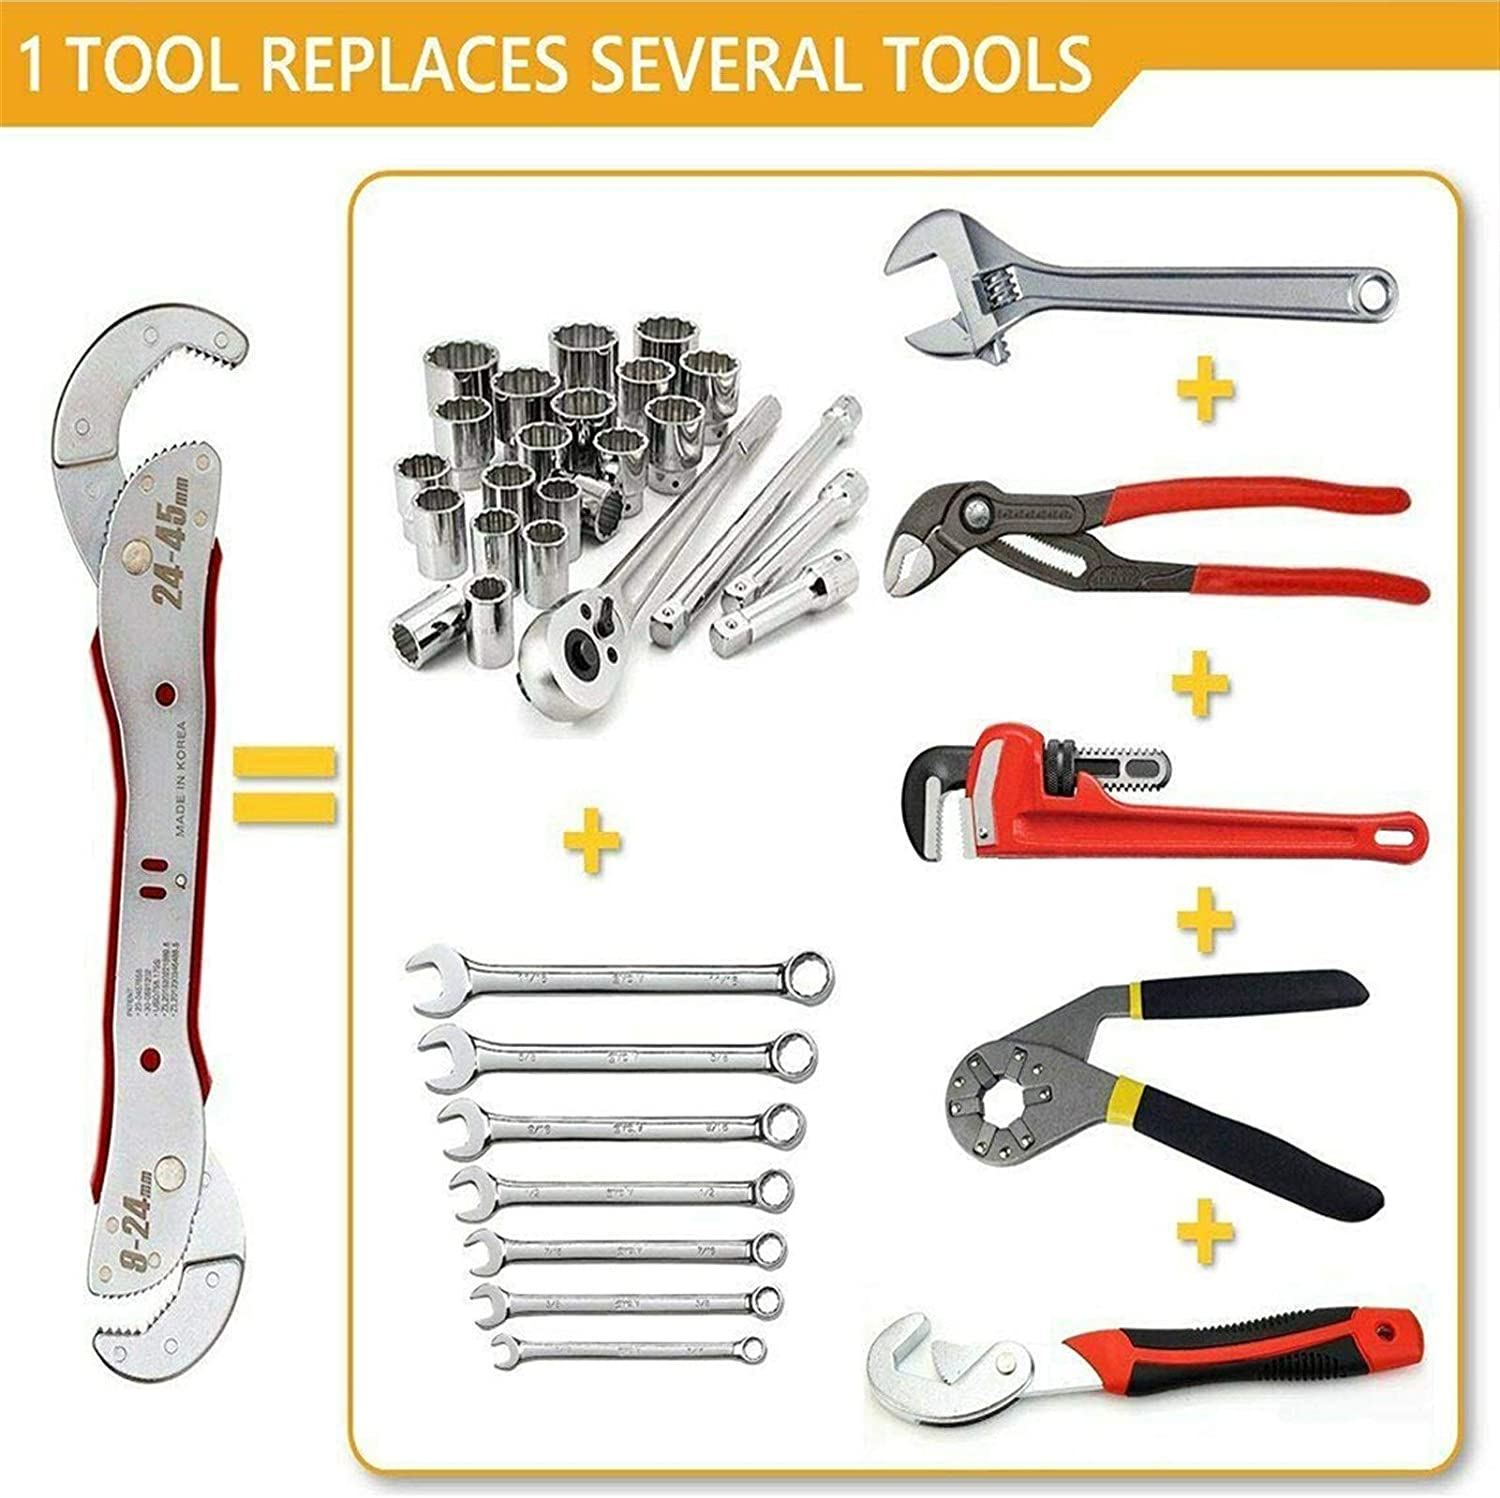 9-45mm Adjustable Universal Wrench Spanner Tool Home Hand Tool Ratchet Key Set Wrench Multi-Functional Universal Spanner (Color : 12PCS RED) E